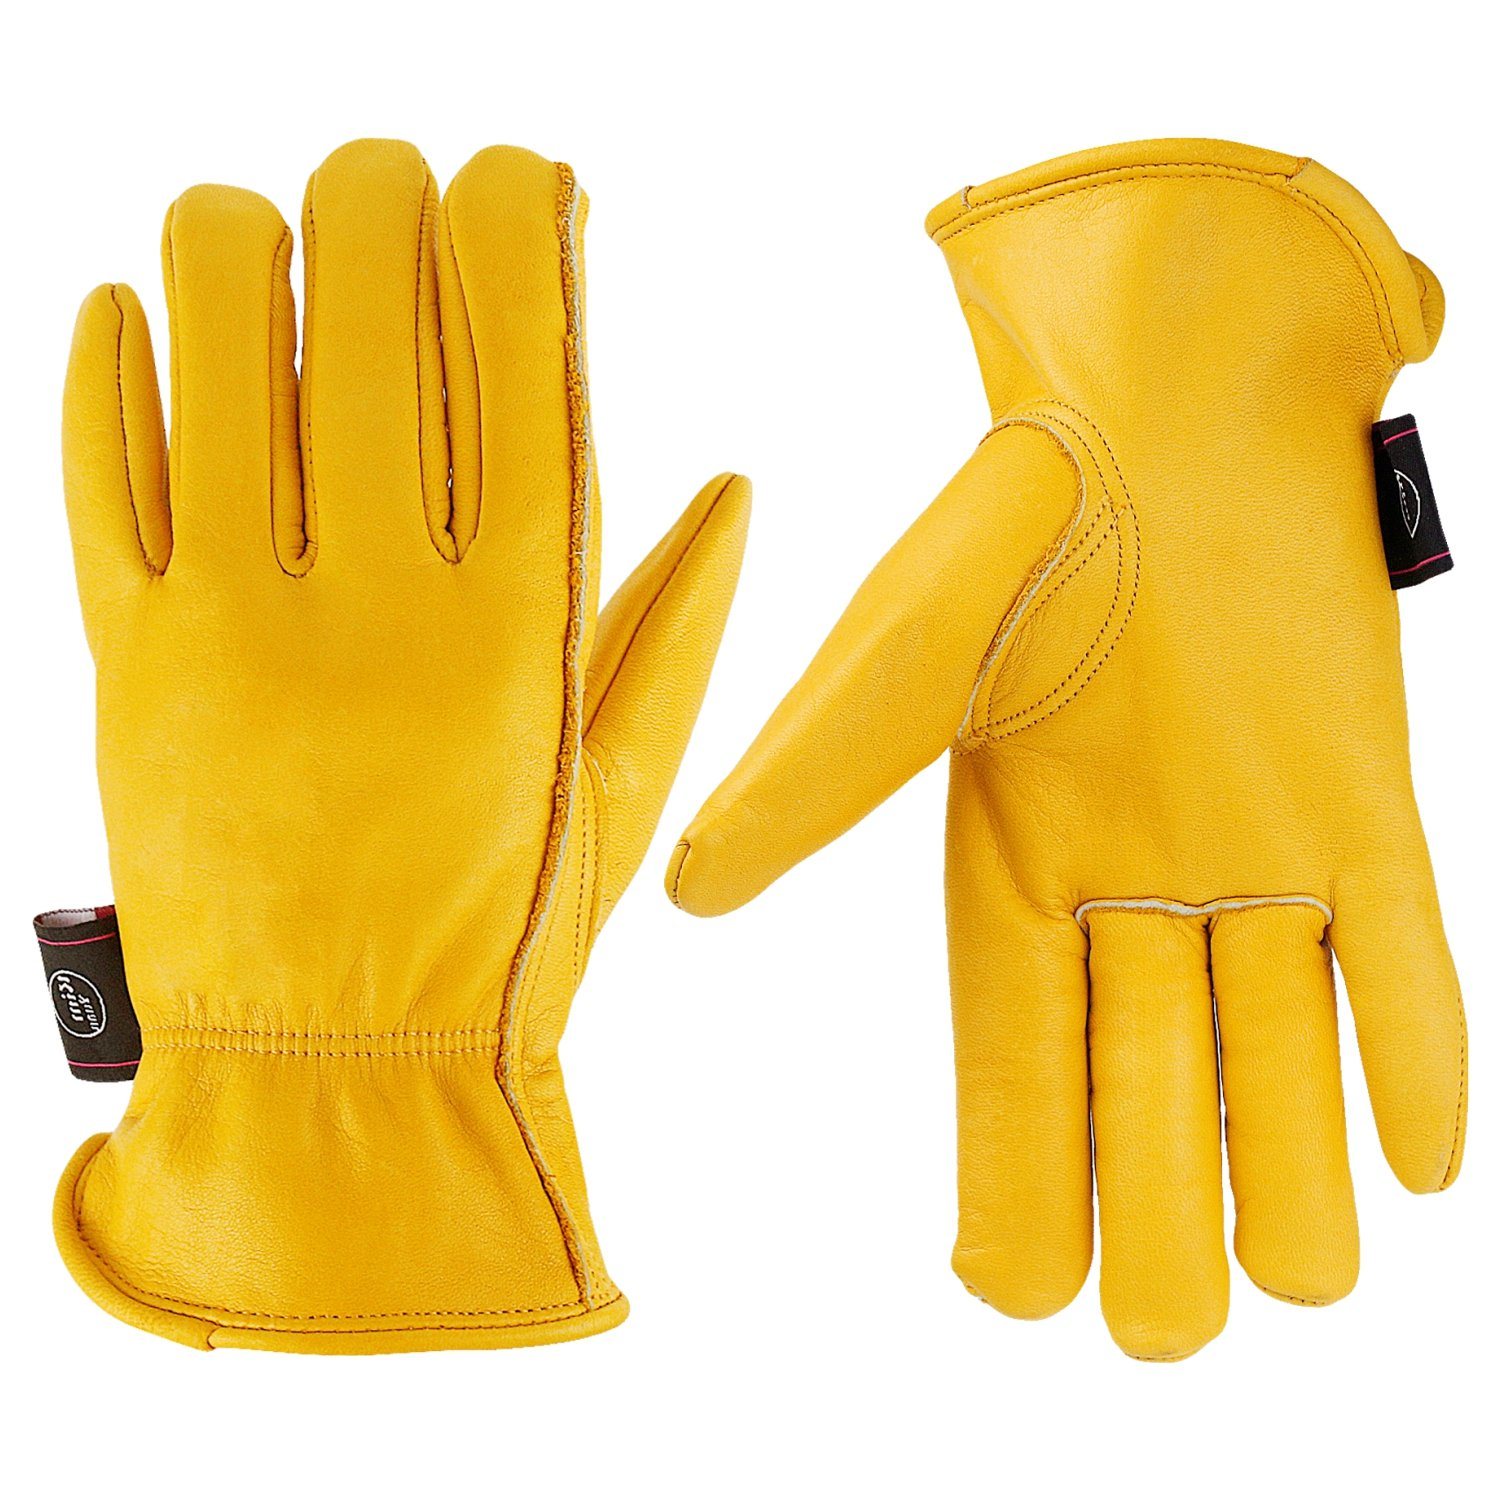 KIM YUAN Leather Work Gloves for Gardening/Cutting/Construction/Motorcycle/Farm, Men & Women, with Elastic Wrist, Large